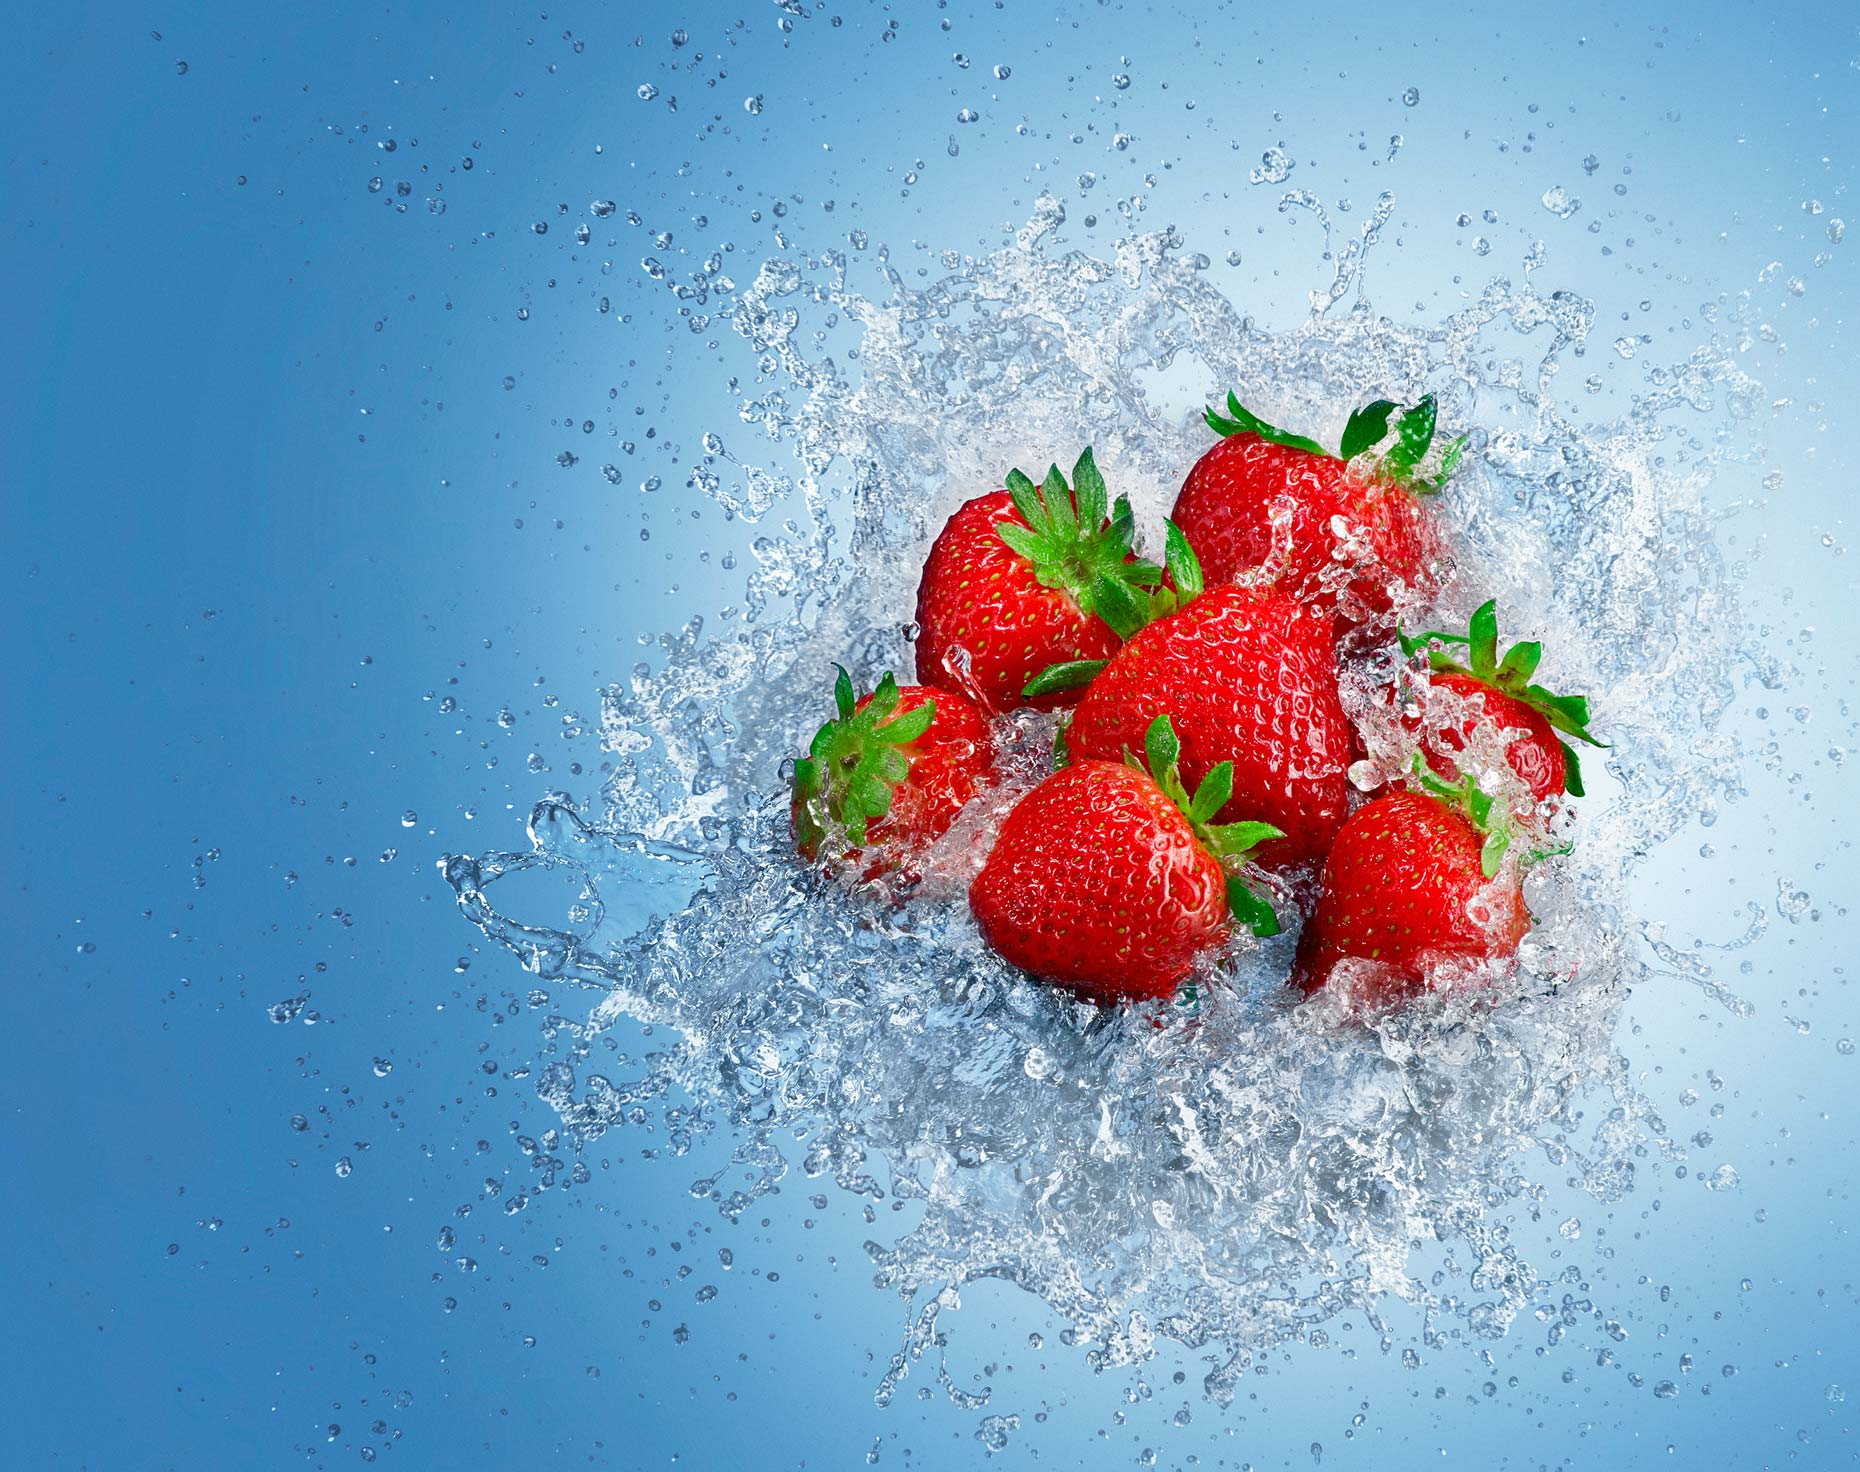 adrianmueller_strawberry_explosion_caprisun_02